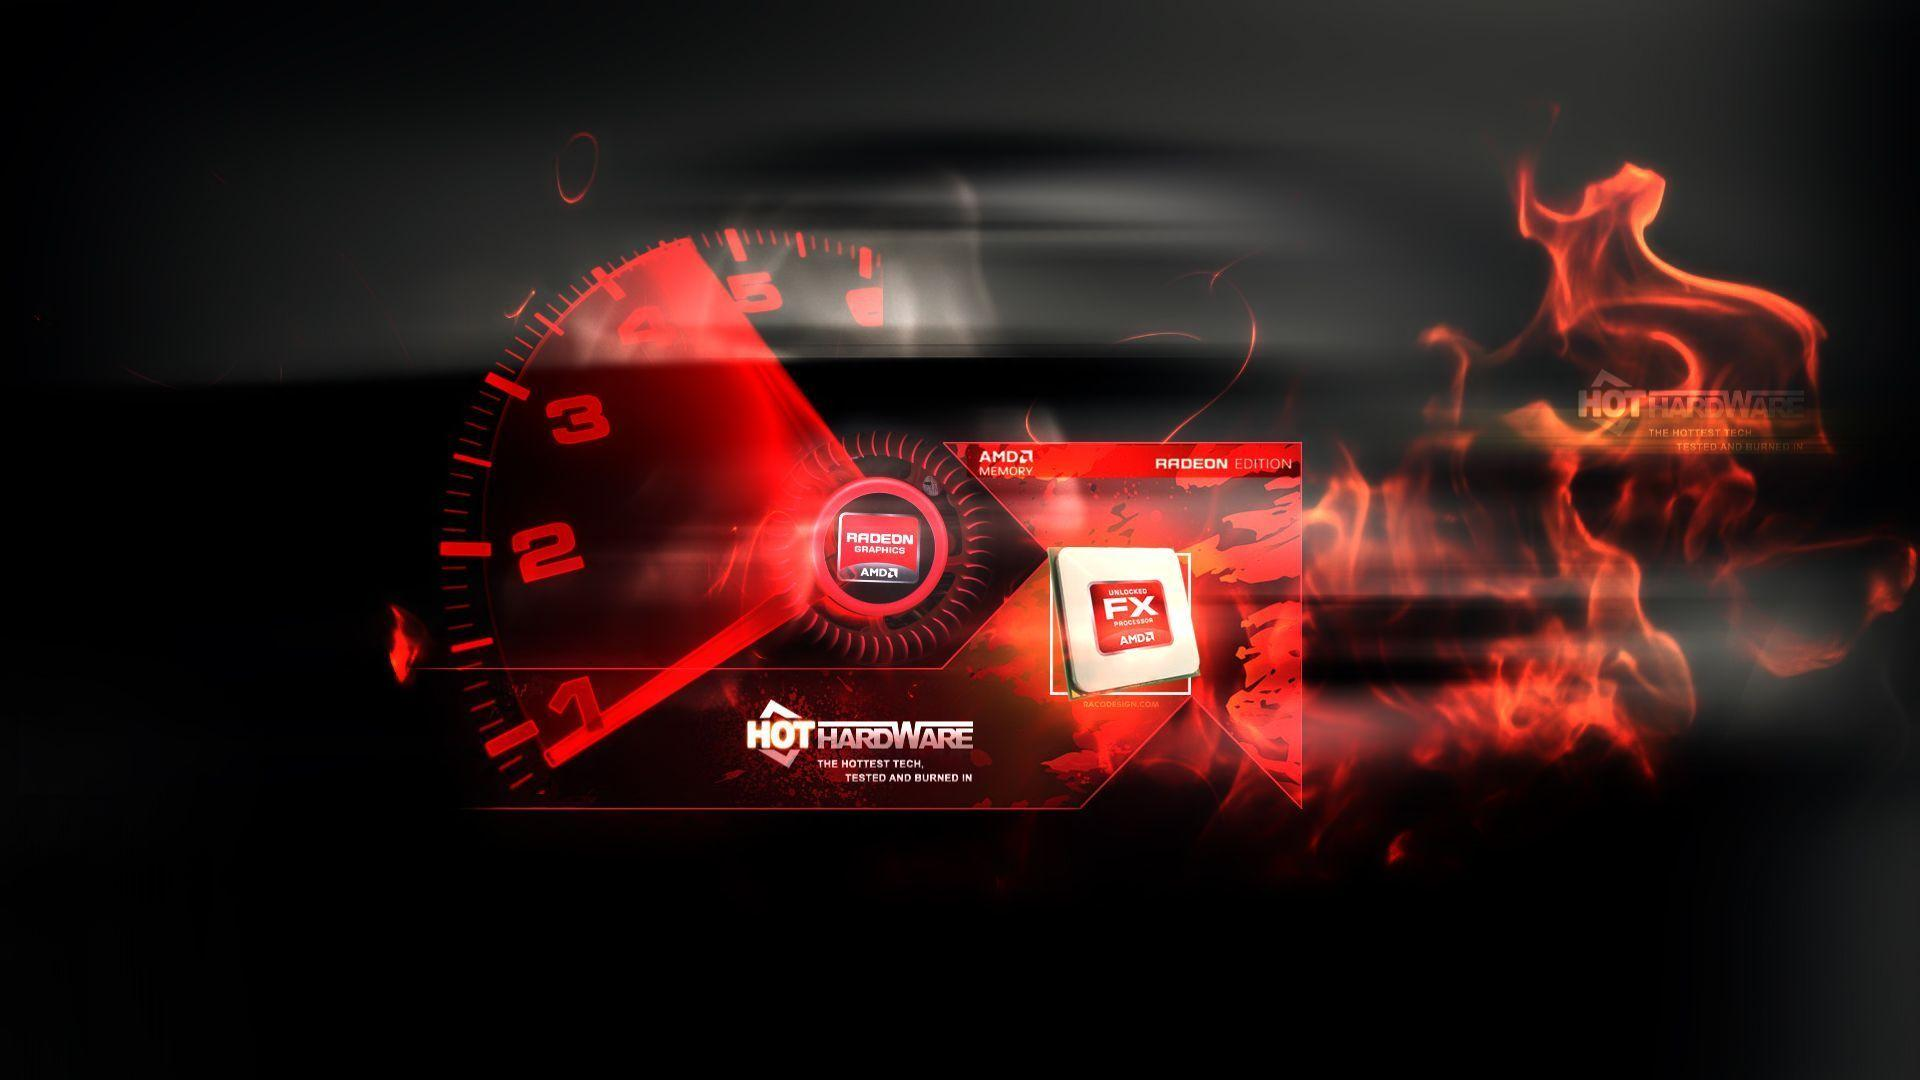 amd radeon wallpapers hd - photo #3